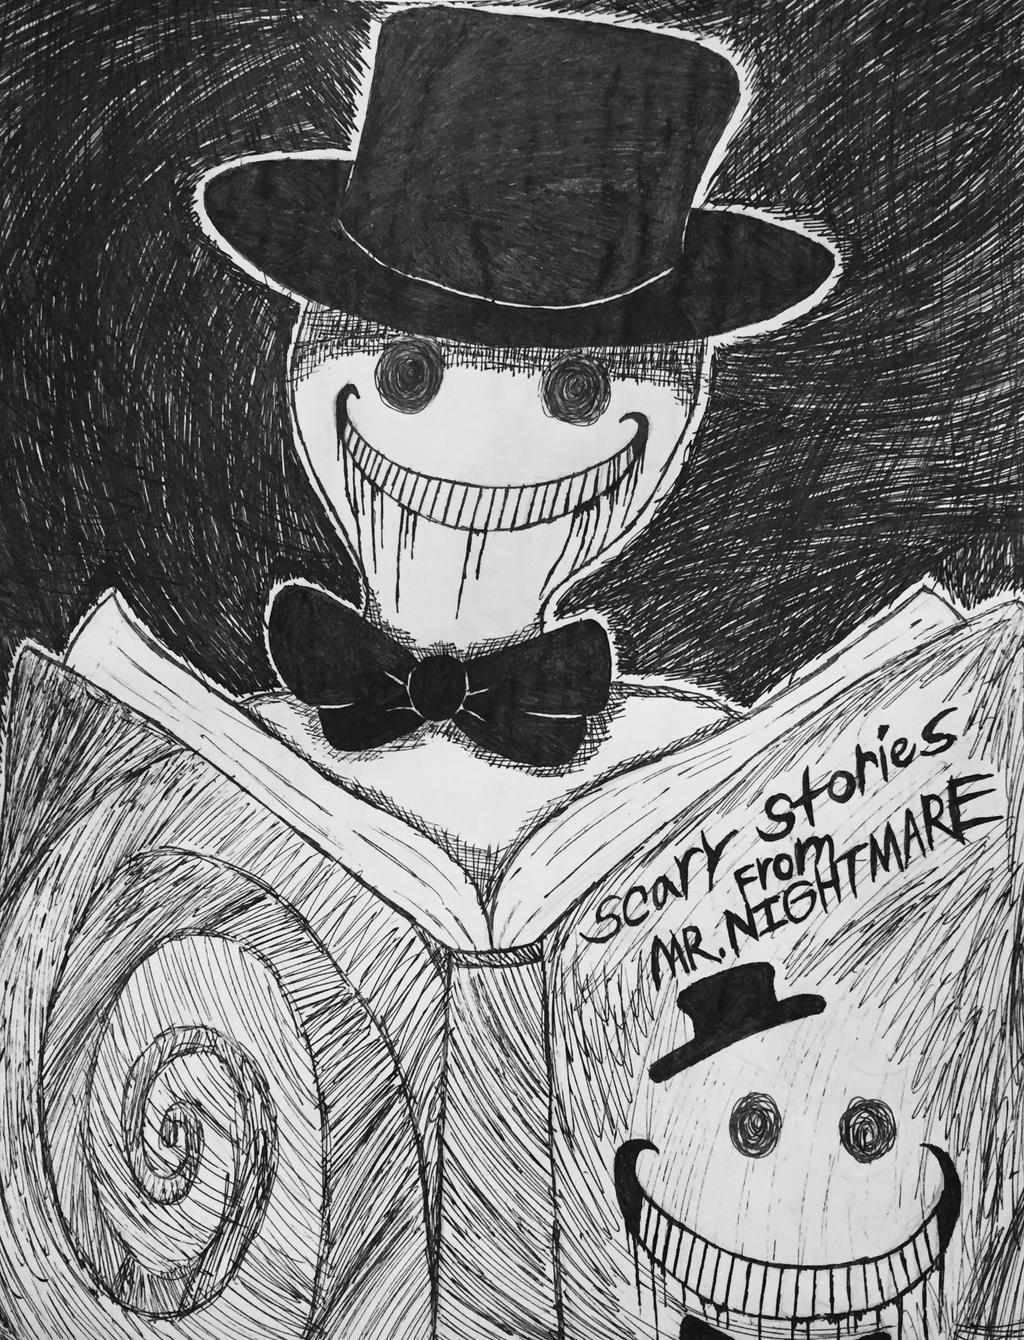 Mr Nightmare By Shinysmeargle On Deviantart 2,788 likes · 9 talking about this. mr nightmare by shinysmeargle on